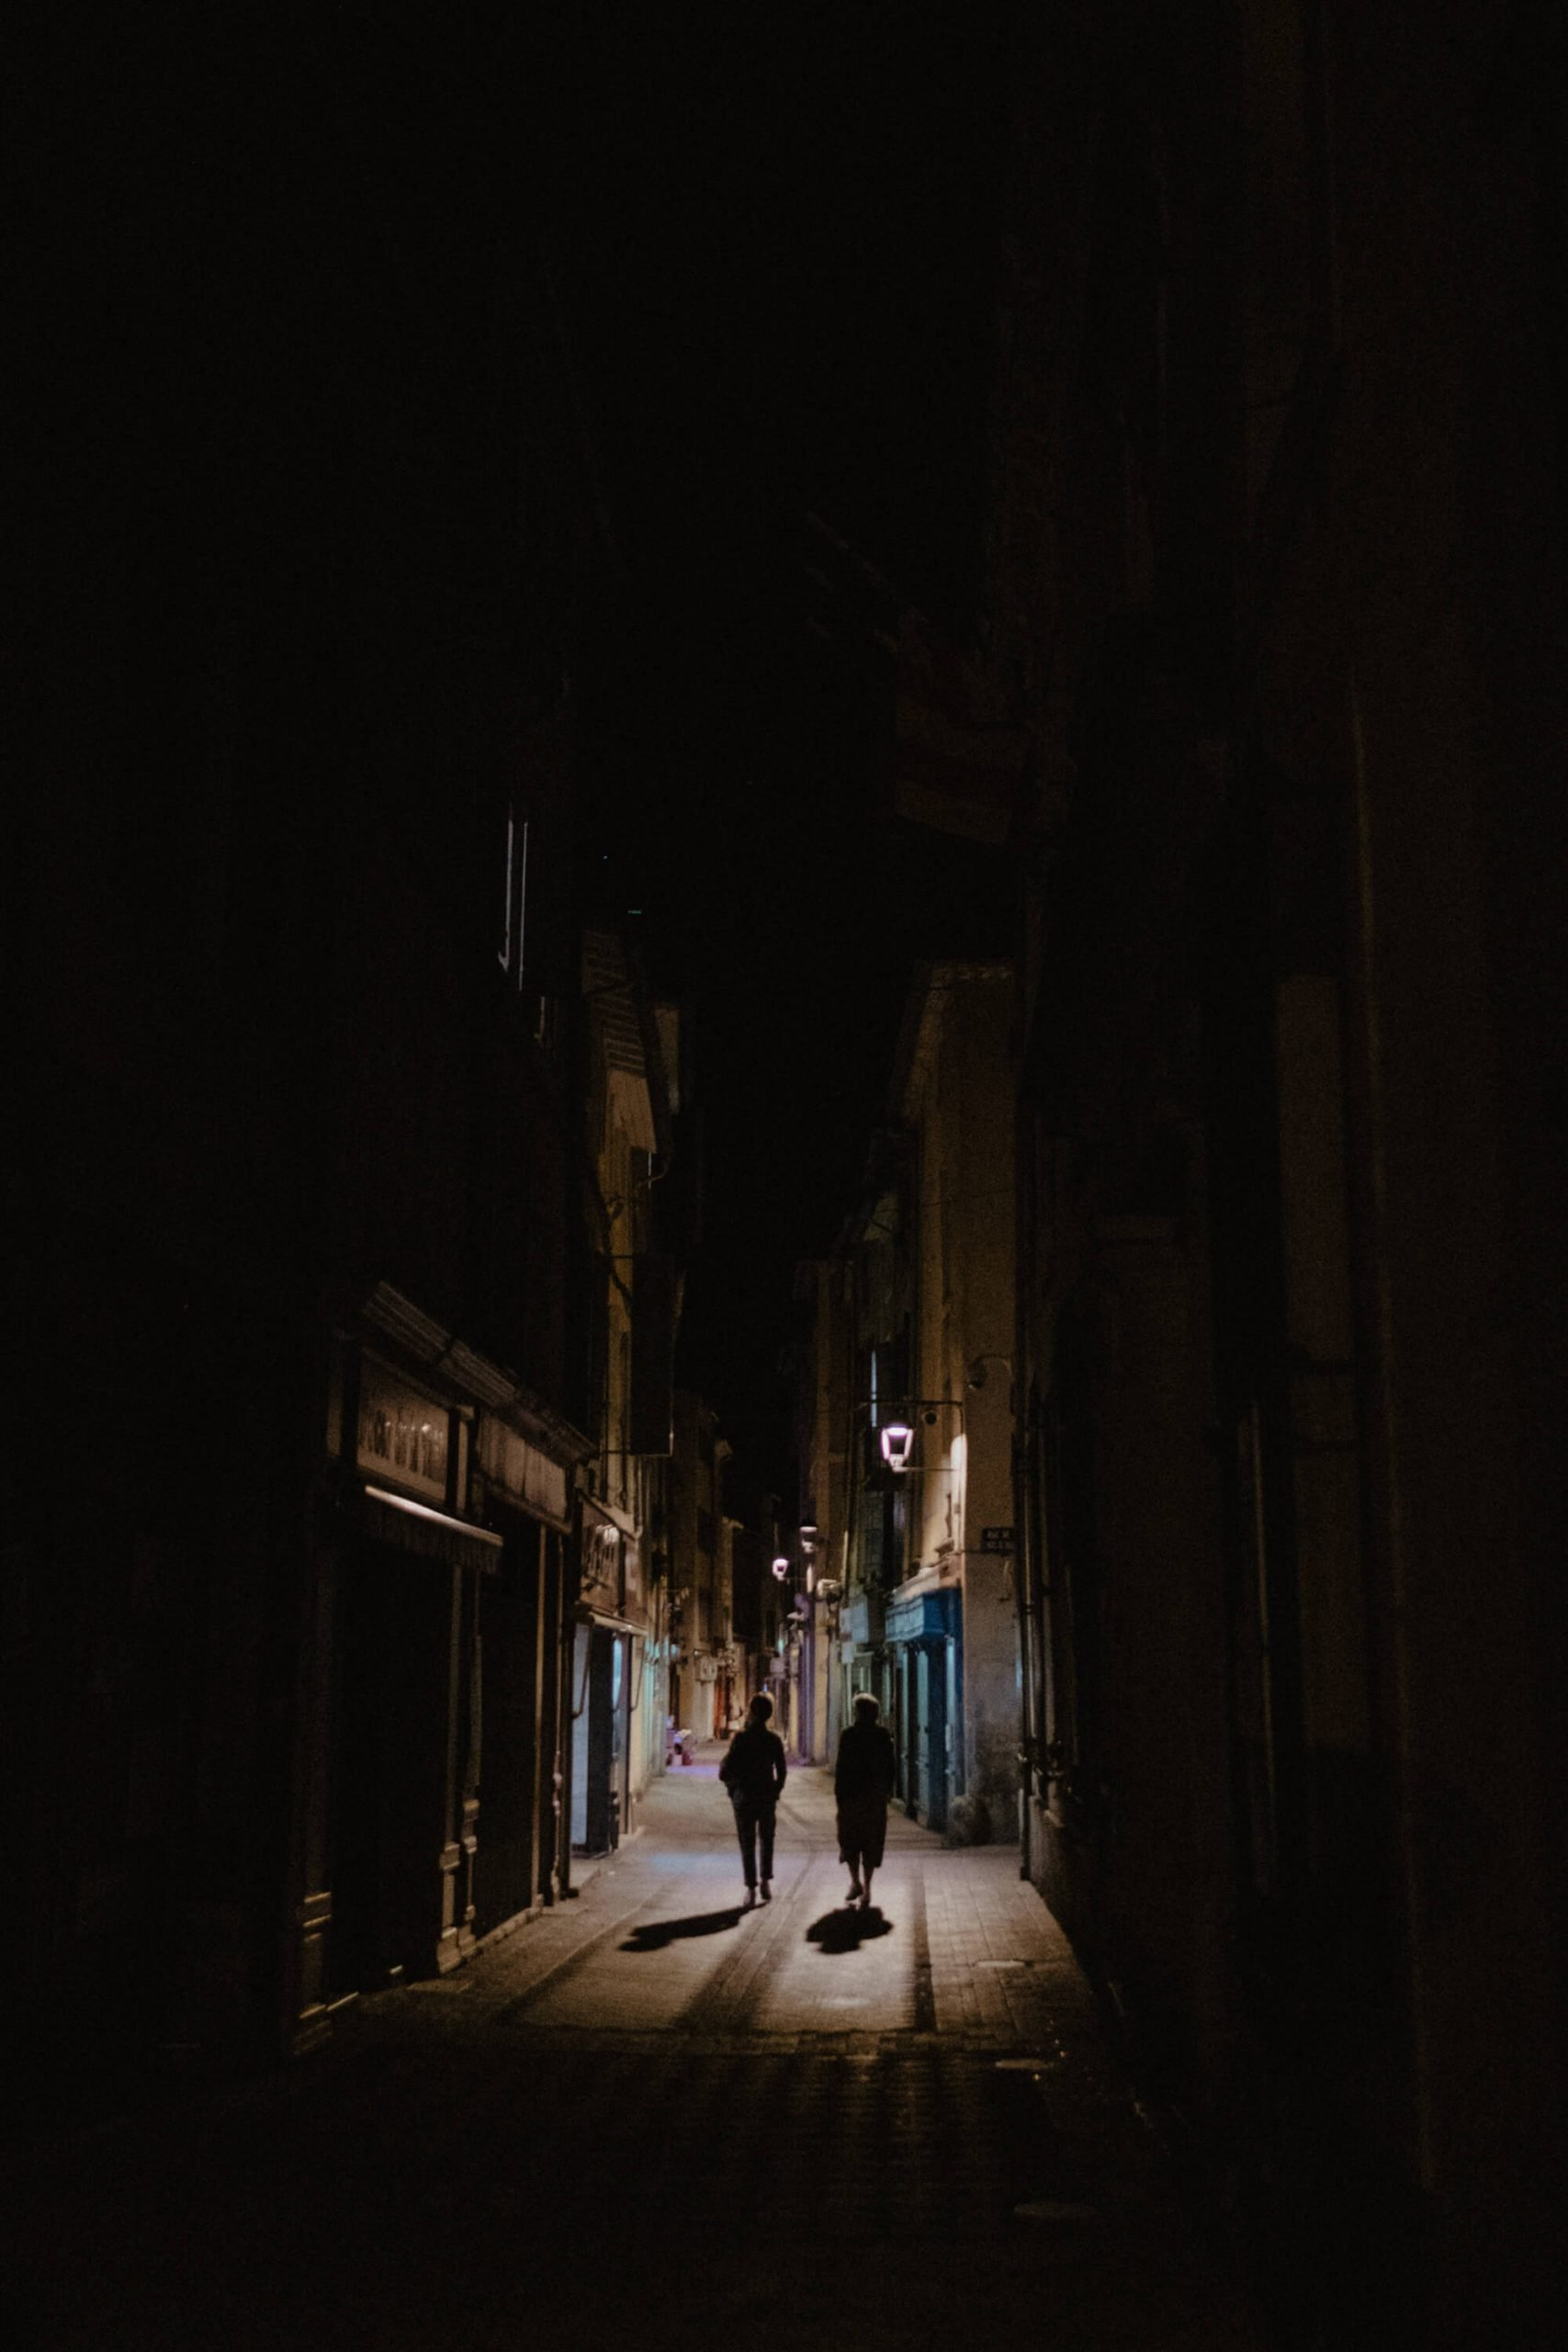 elisabetta riccio - urban vision - people walking in the middle of the night in the french town isle sur la sorgue